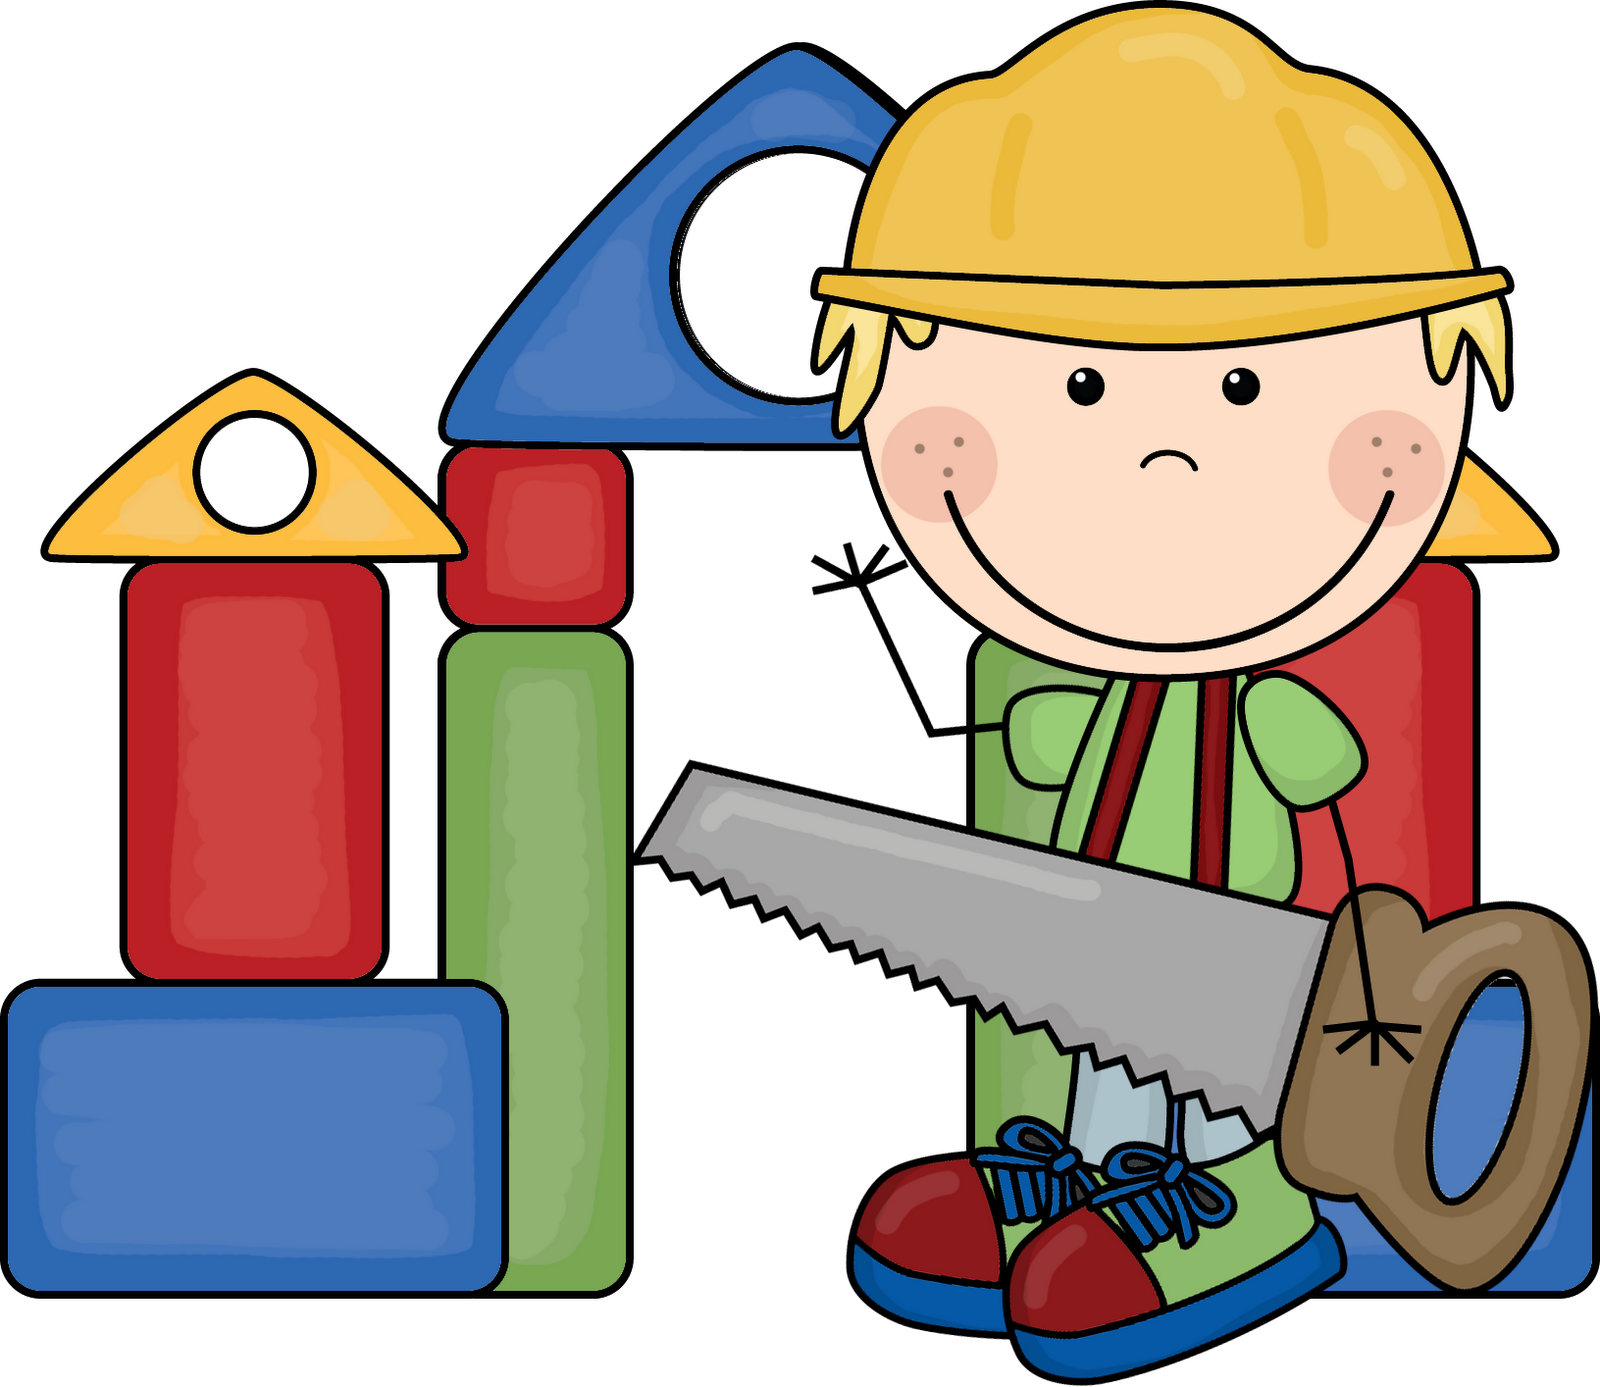 Chip clipart kid. Mathematics construction math errortape